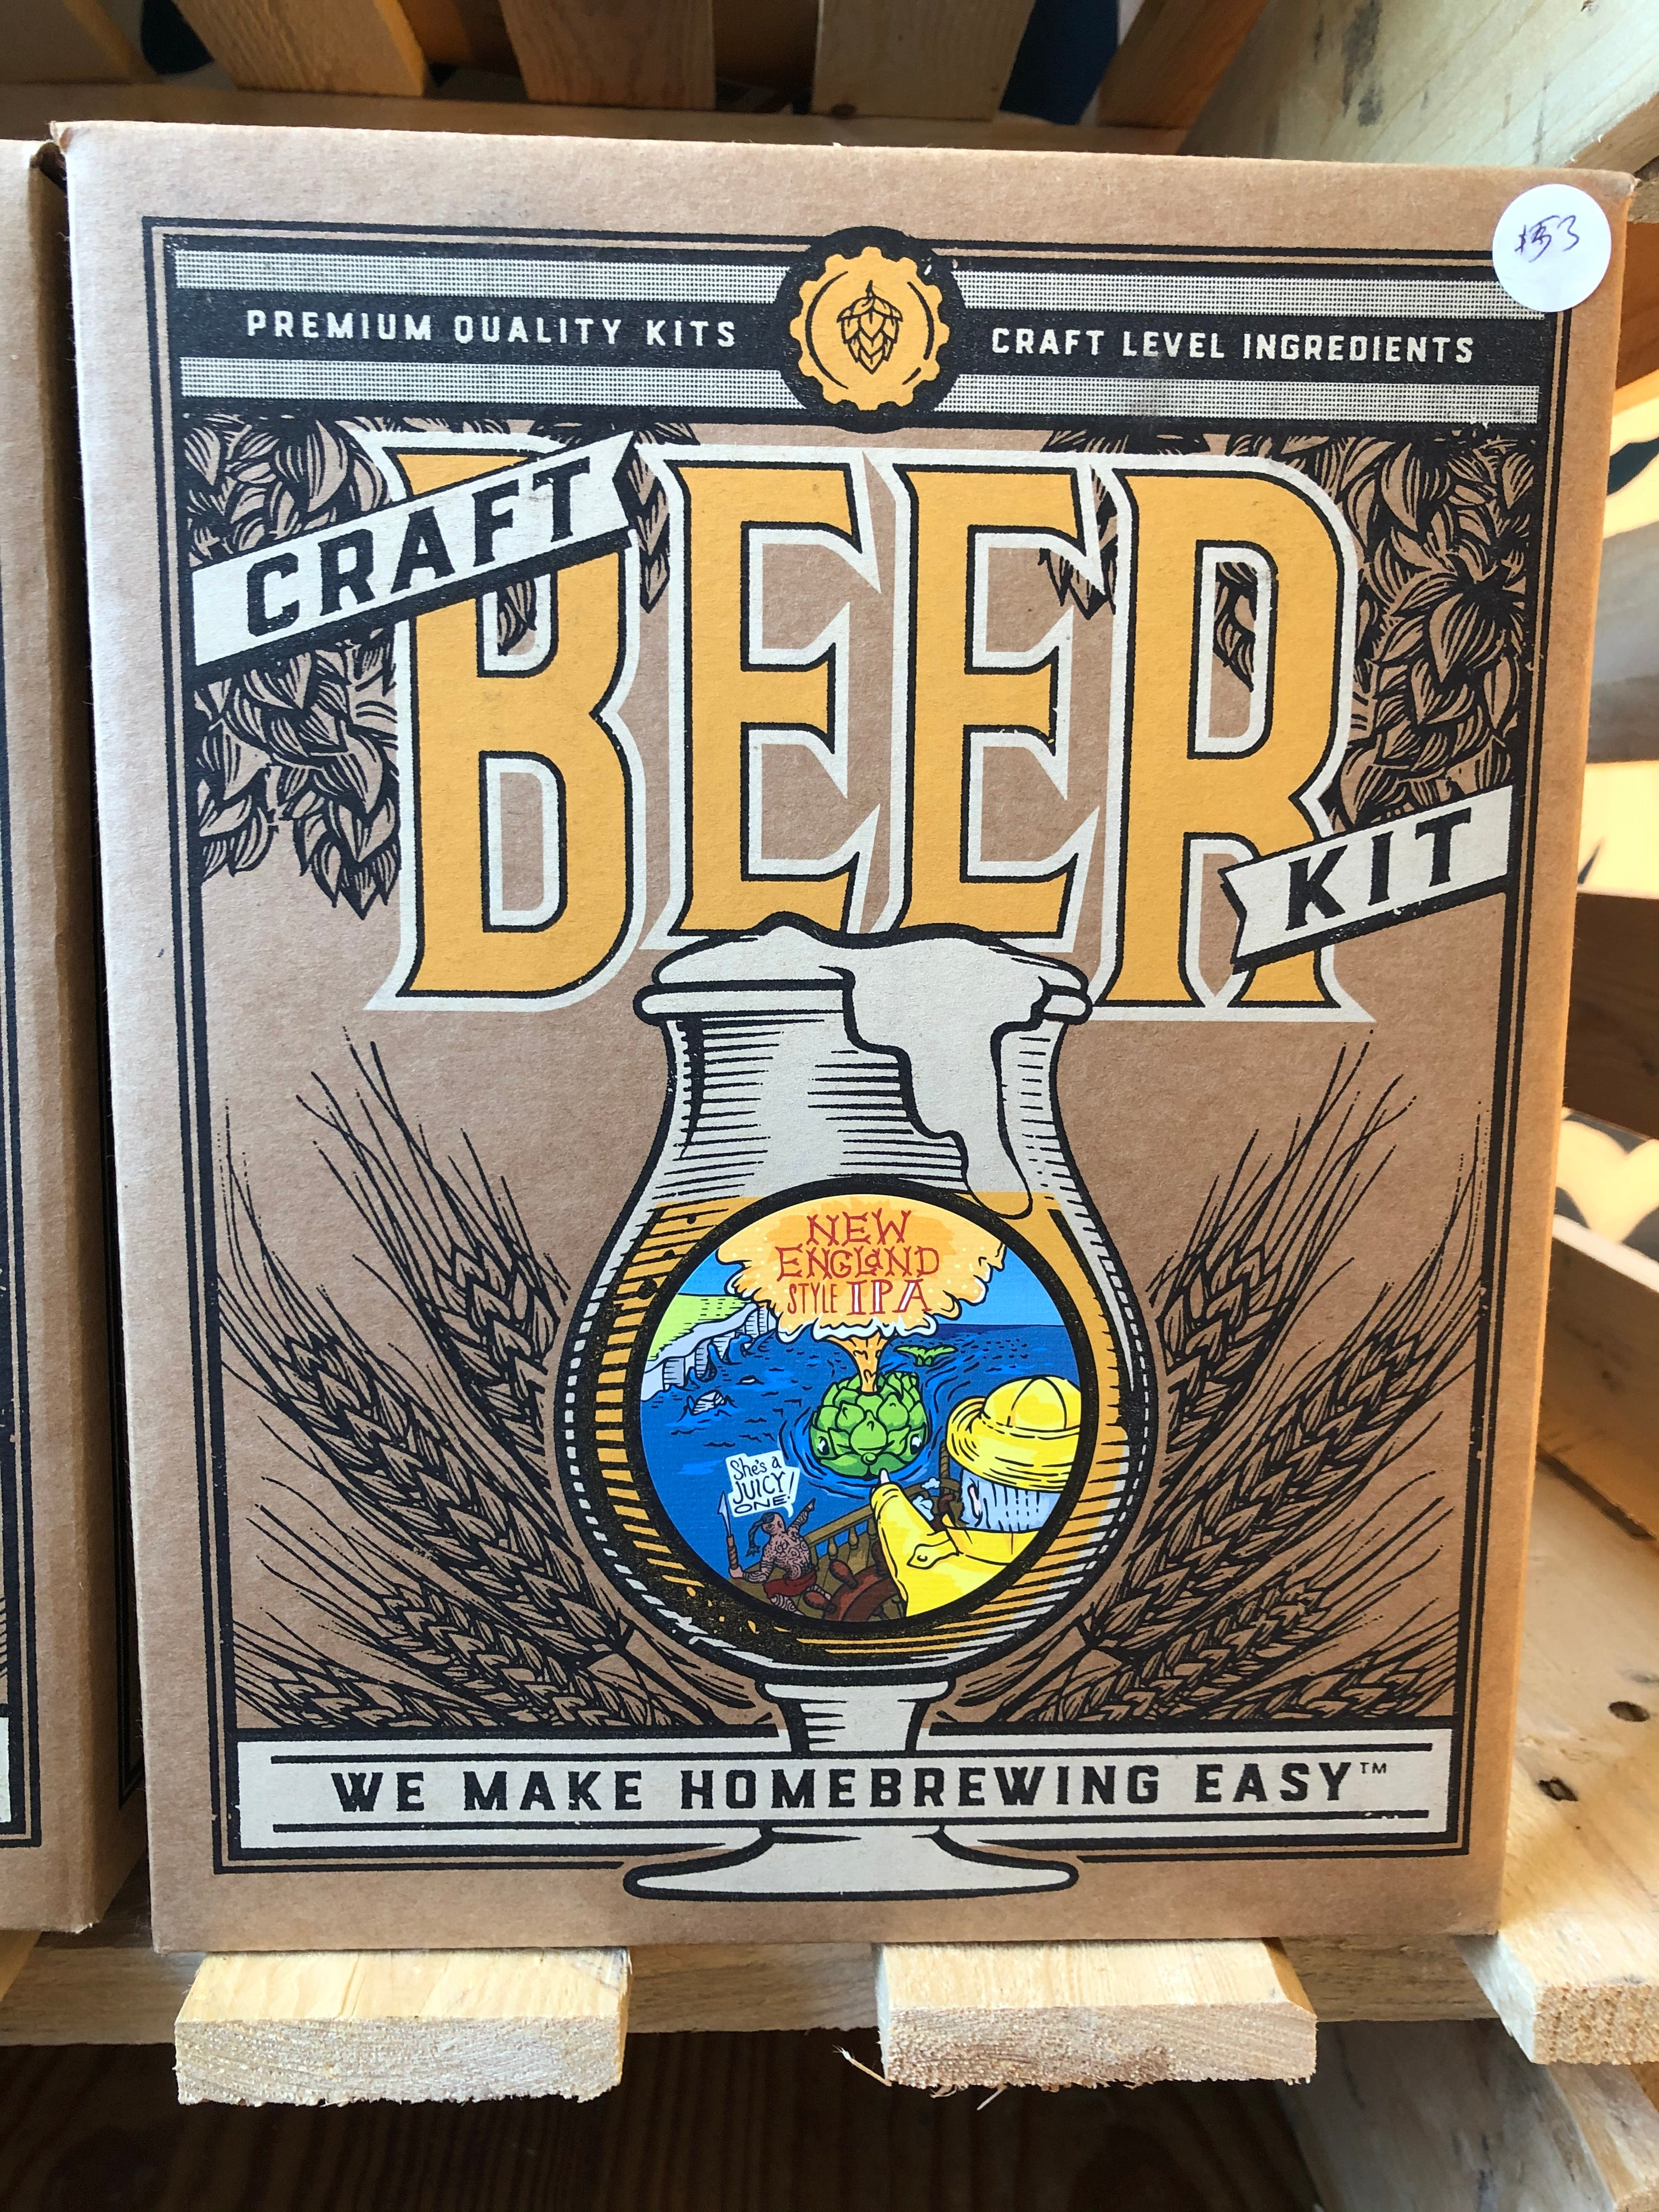 Craft Beer Making Kit New England IPA